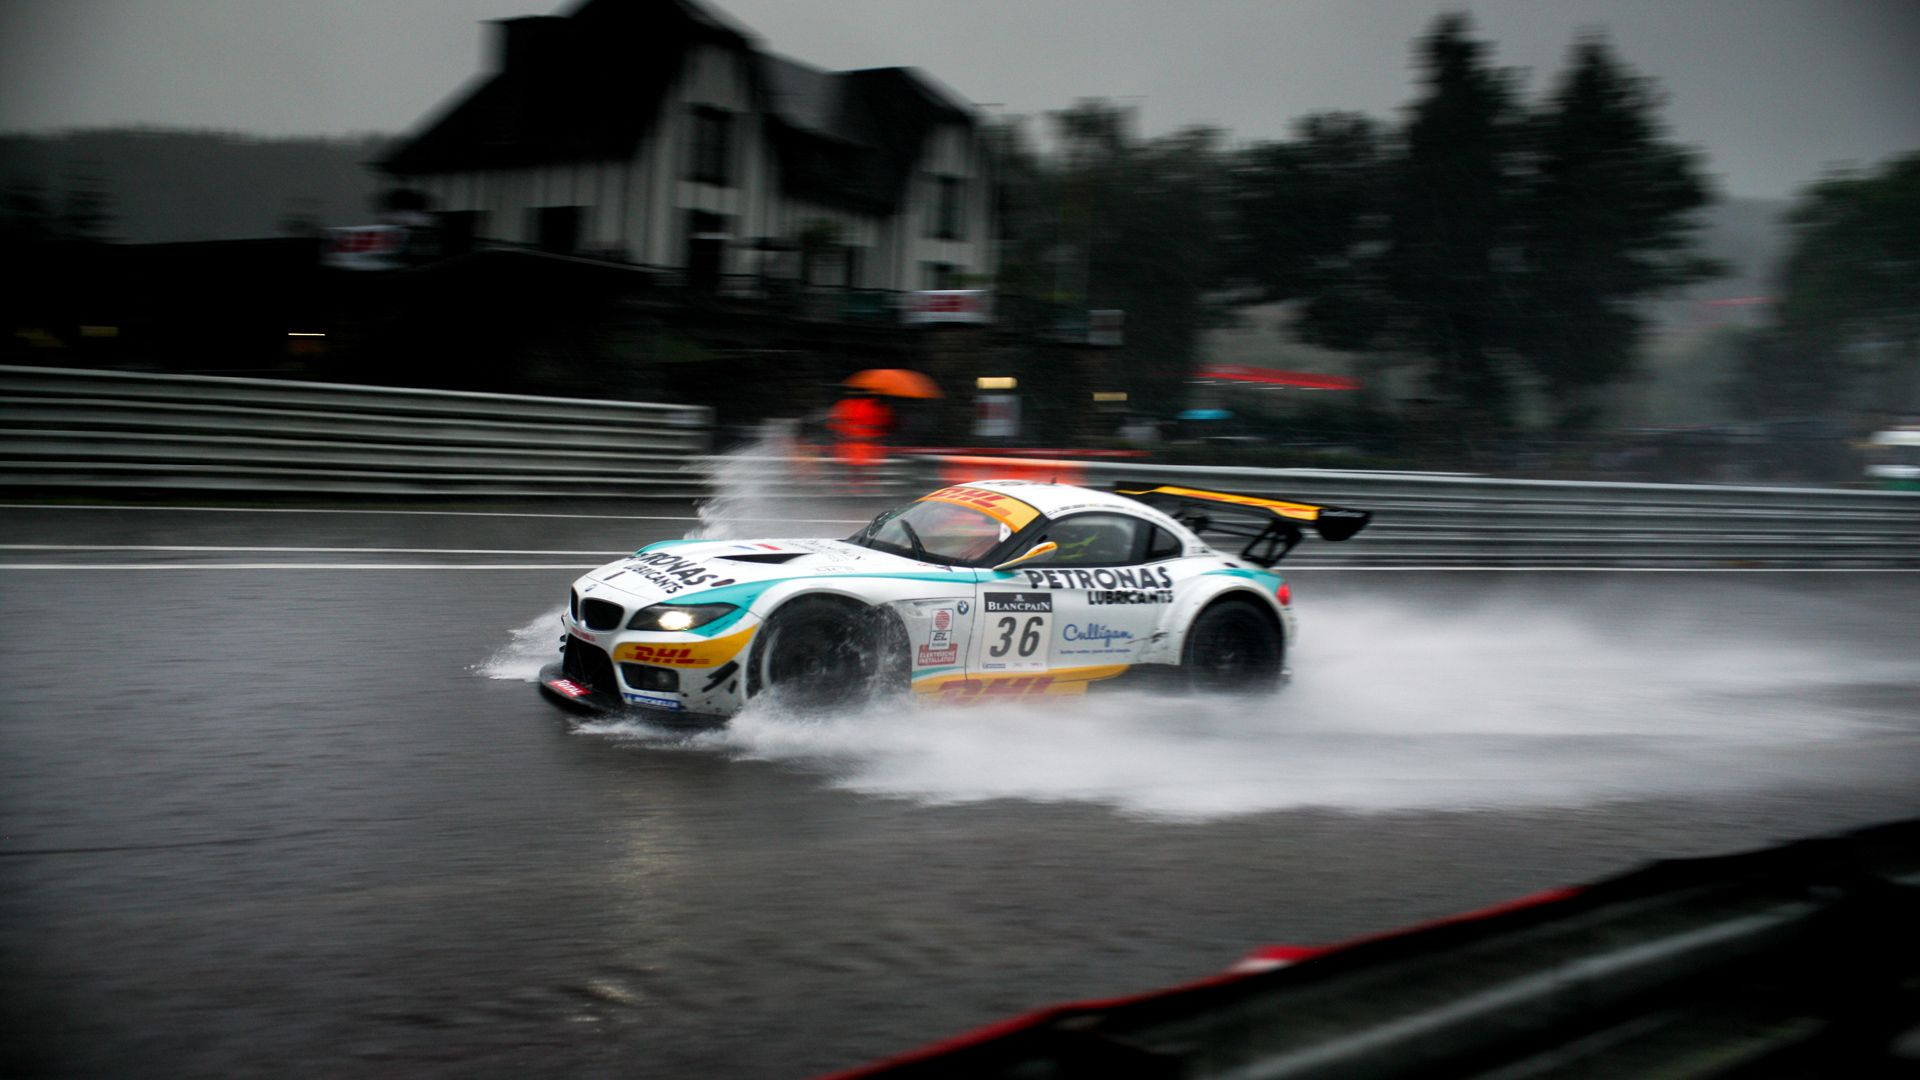 Bmw Rain Race Hd Car Wallpaper Http Carwallpaper Org Bmw Rain